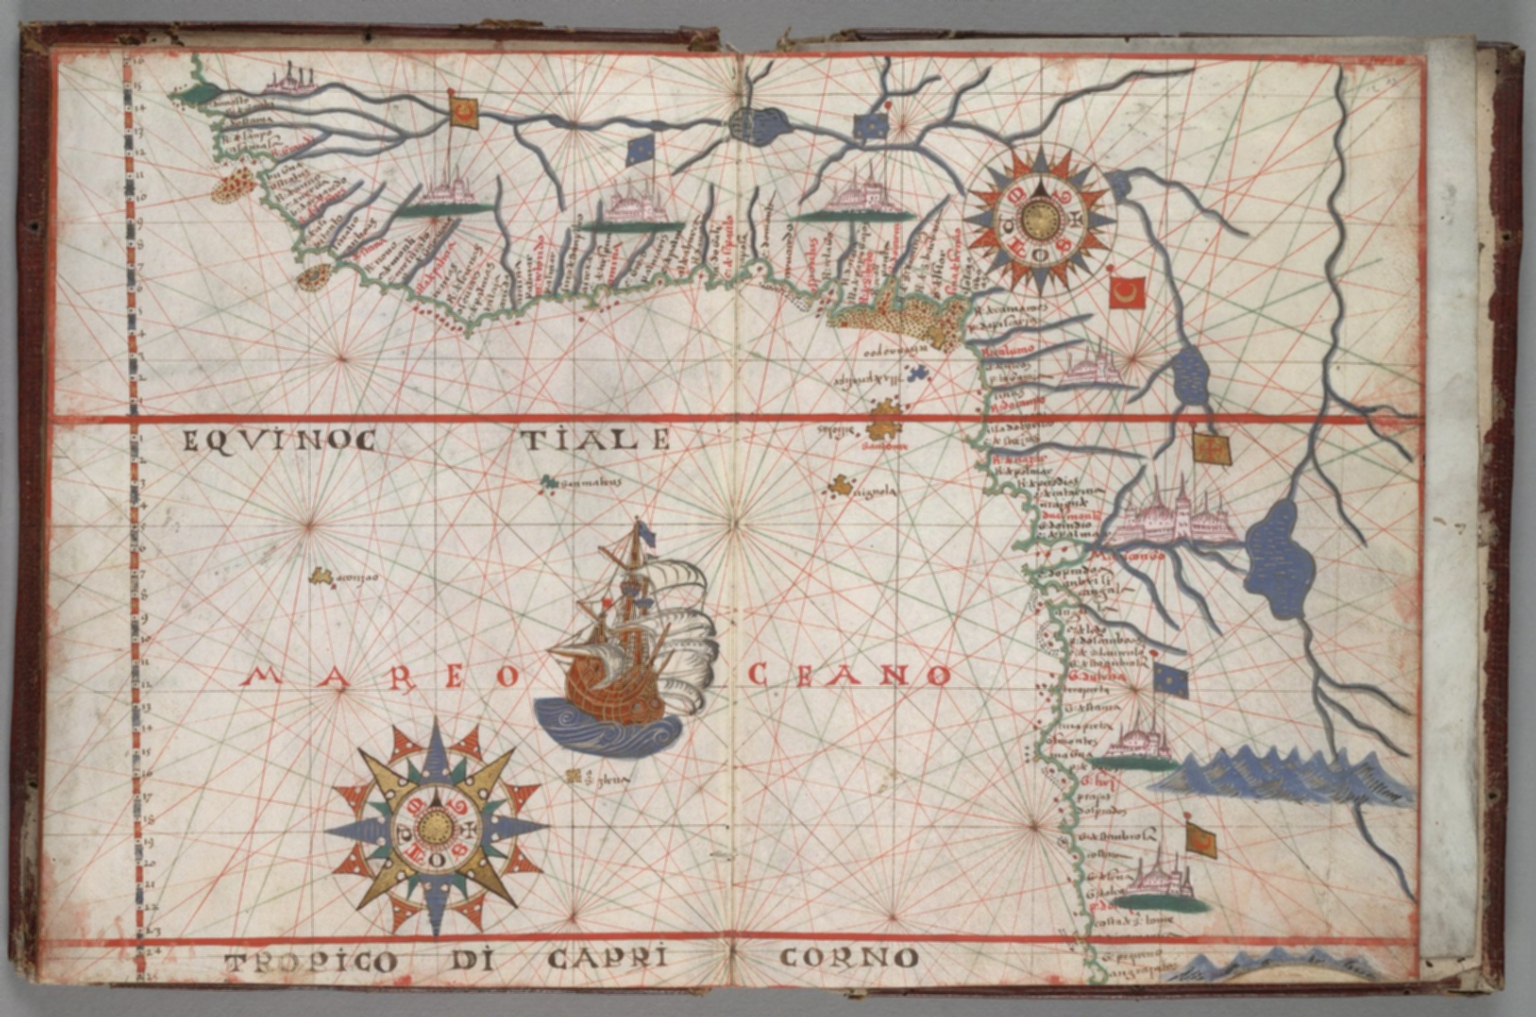 West central coast of Africa